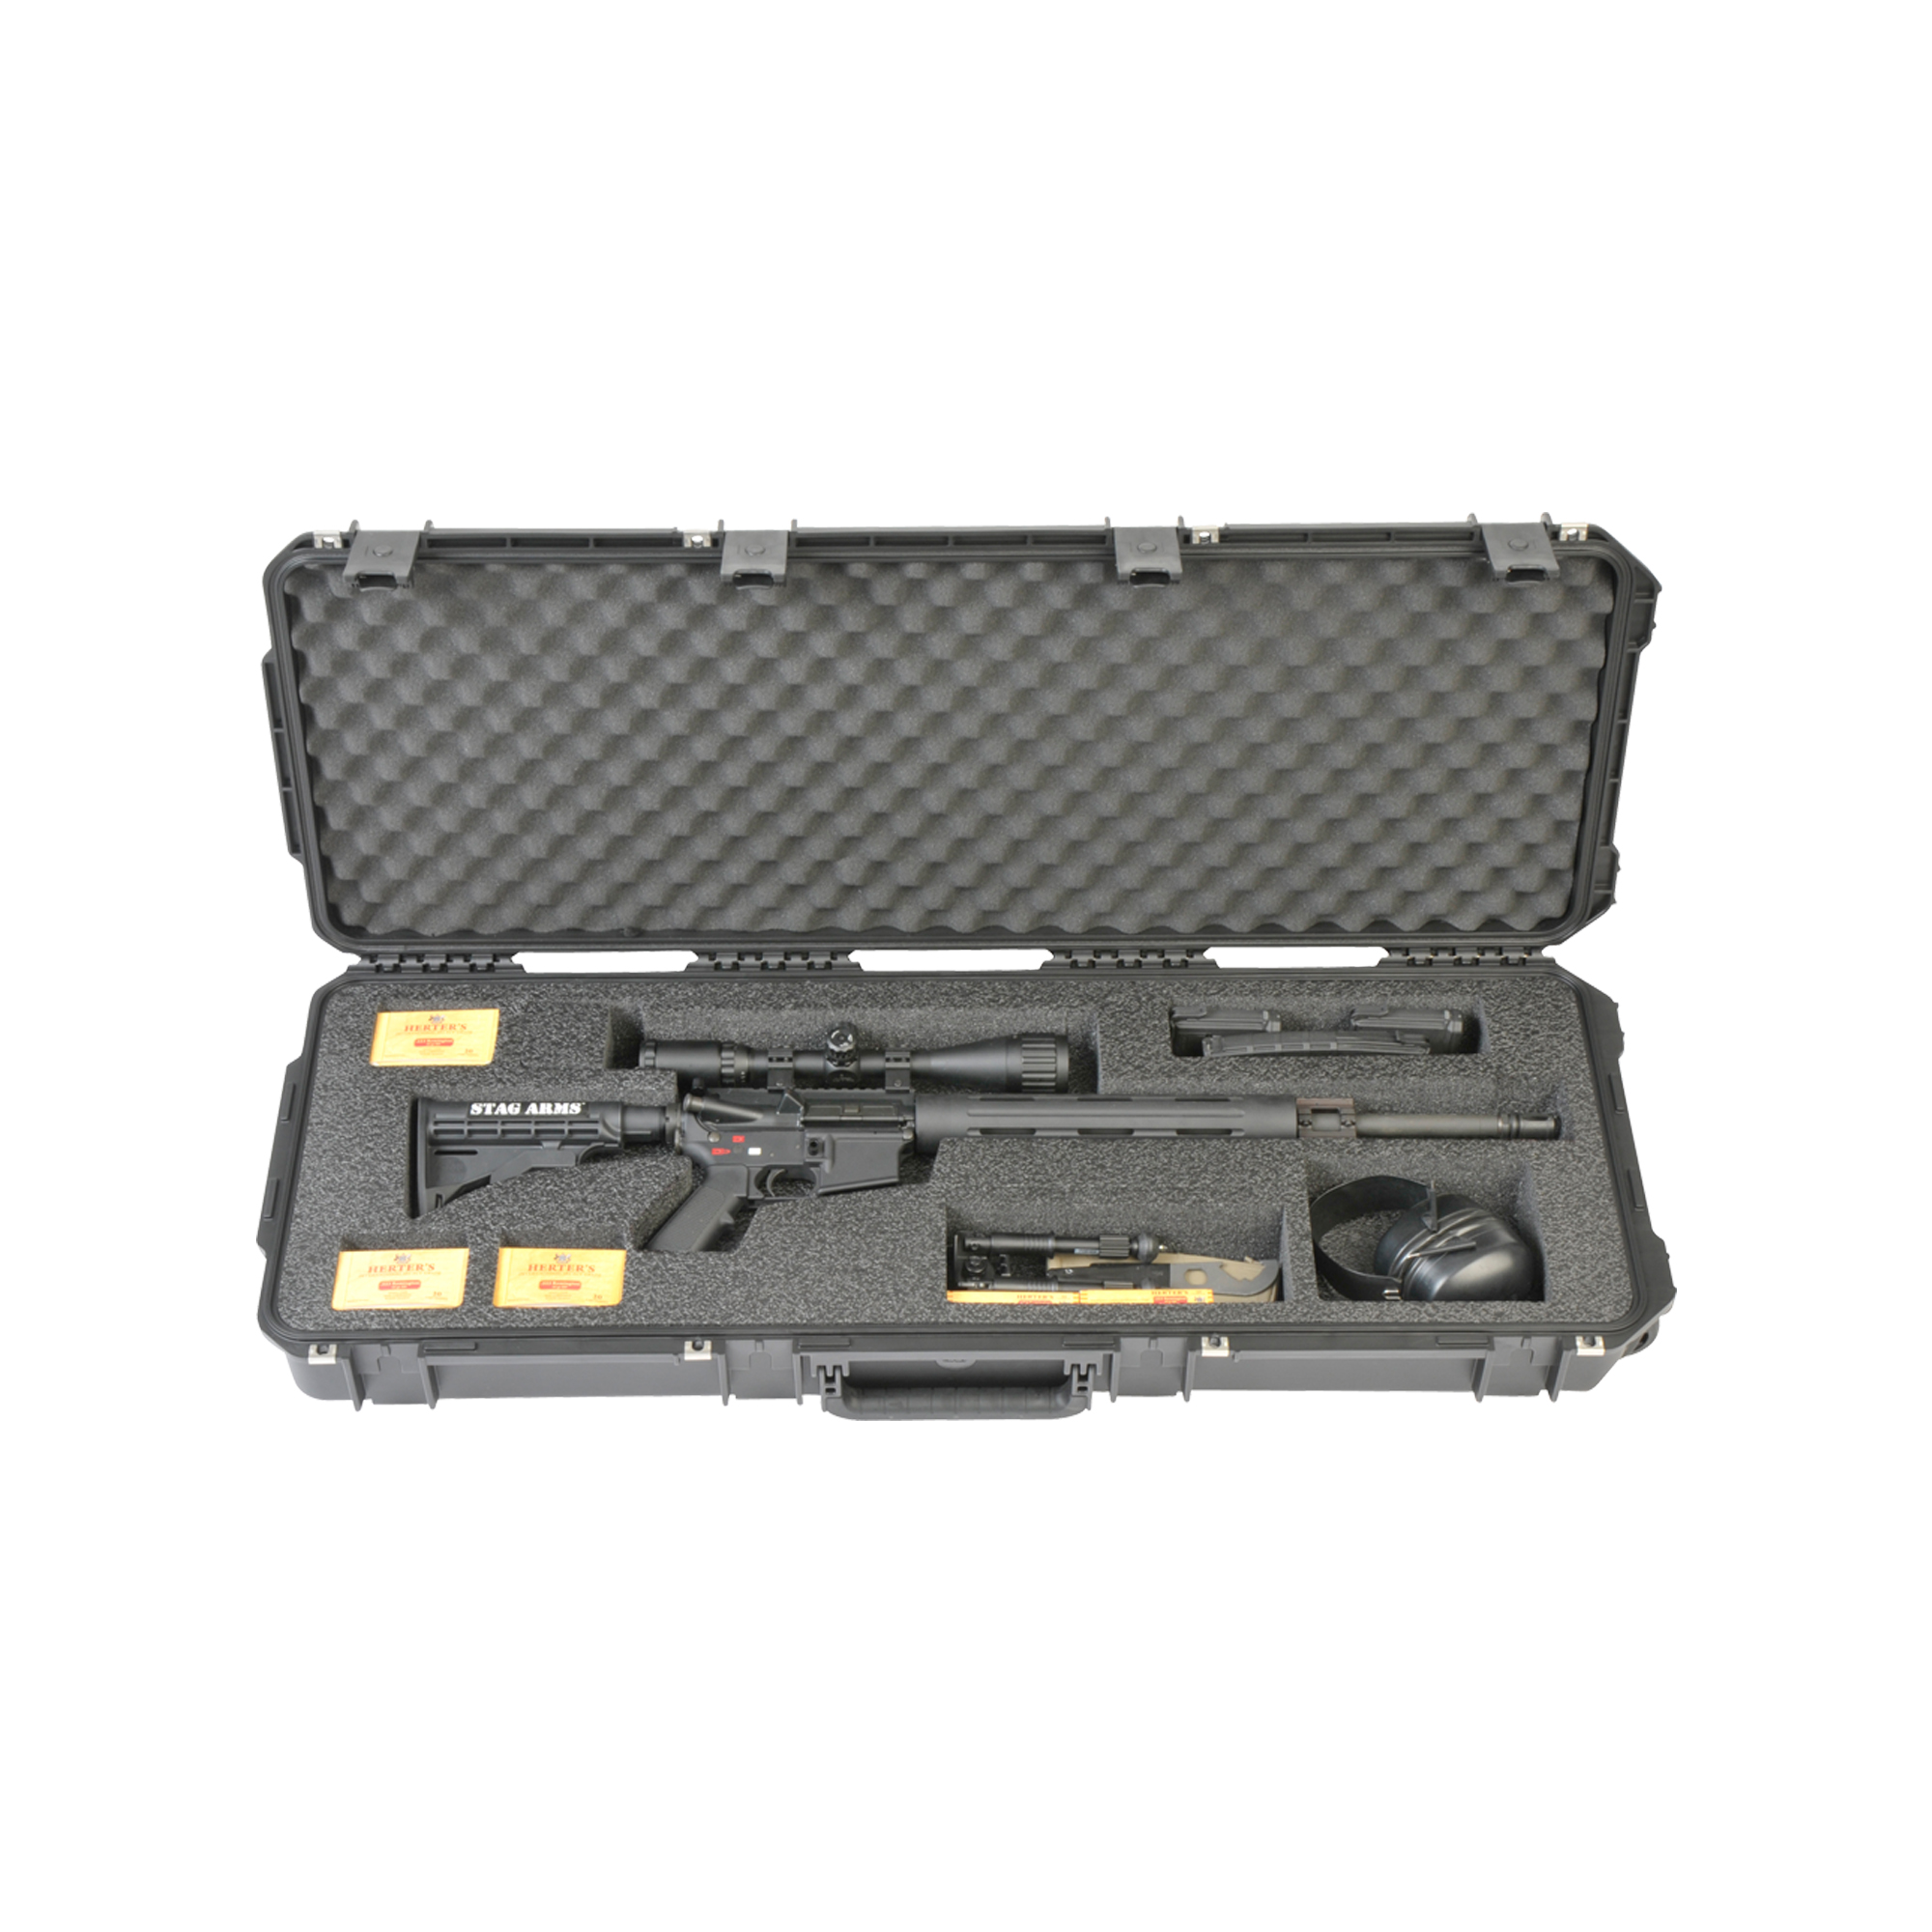 """SKB is recognized globally as an industry leader in the design and manufacture of molded polymer transport cases. SKB cases are engineered to provide protection for equipment utilized by hundreds of companies involved in diverse industries from music and pro-audio products to military"""" industrial and medical applications."""